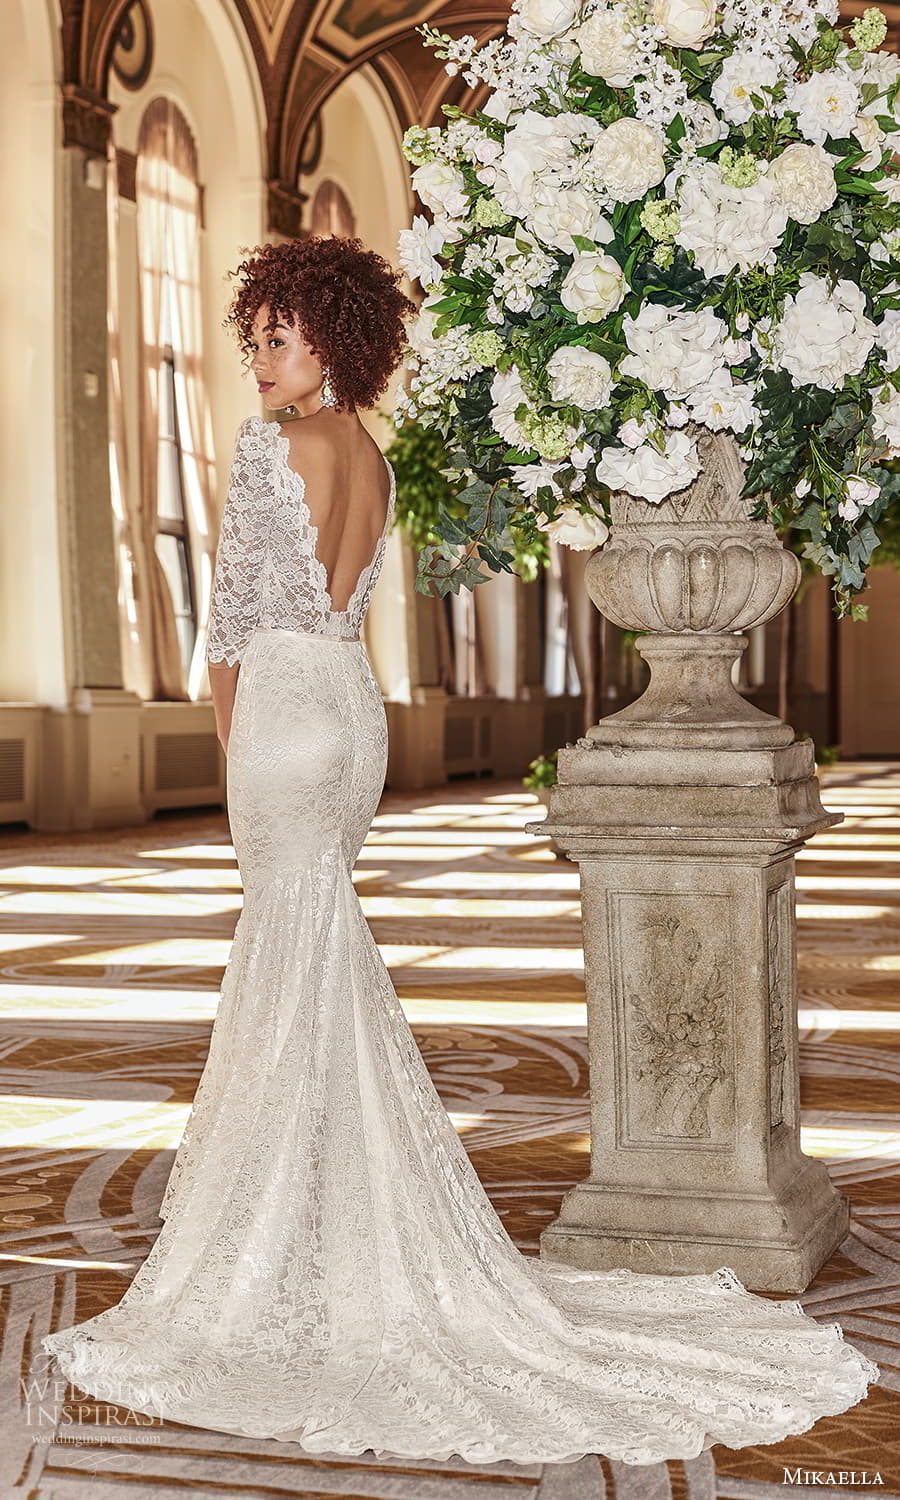 mikaella fall 2021 bridal 3 quarter sleeve v neckline embellished lace sheath wedding dress chapel train v back (2) mv